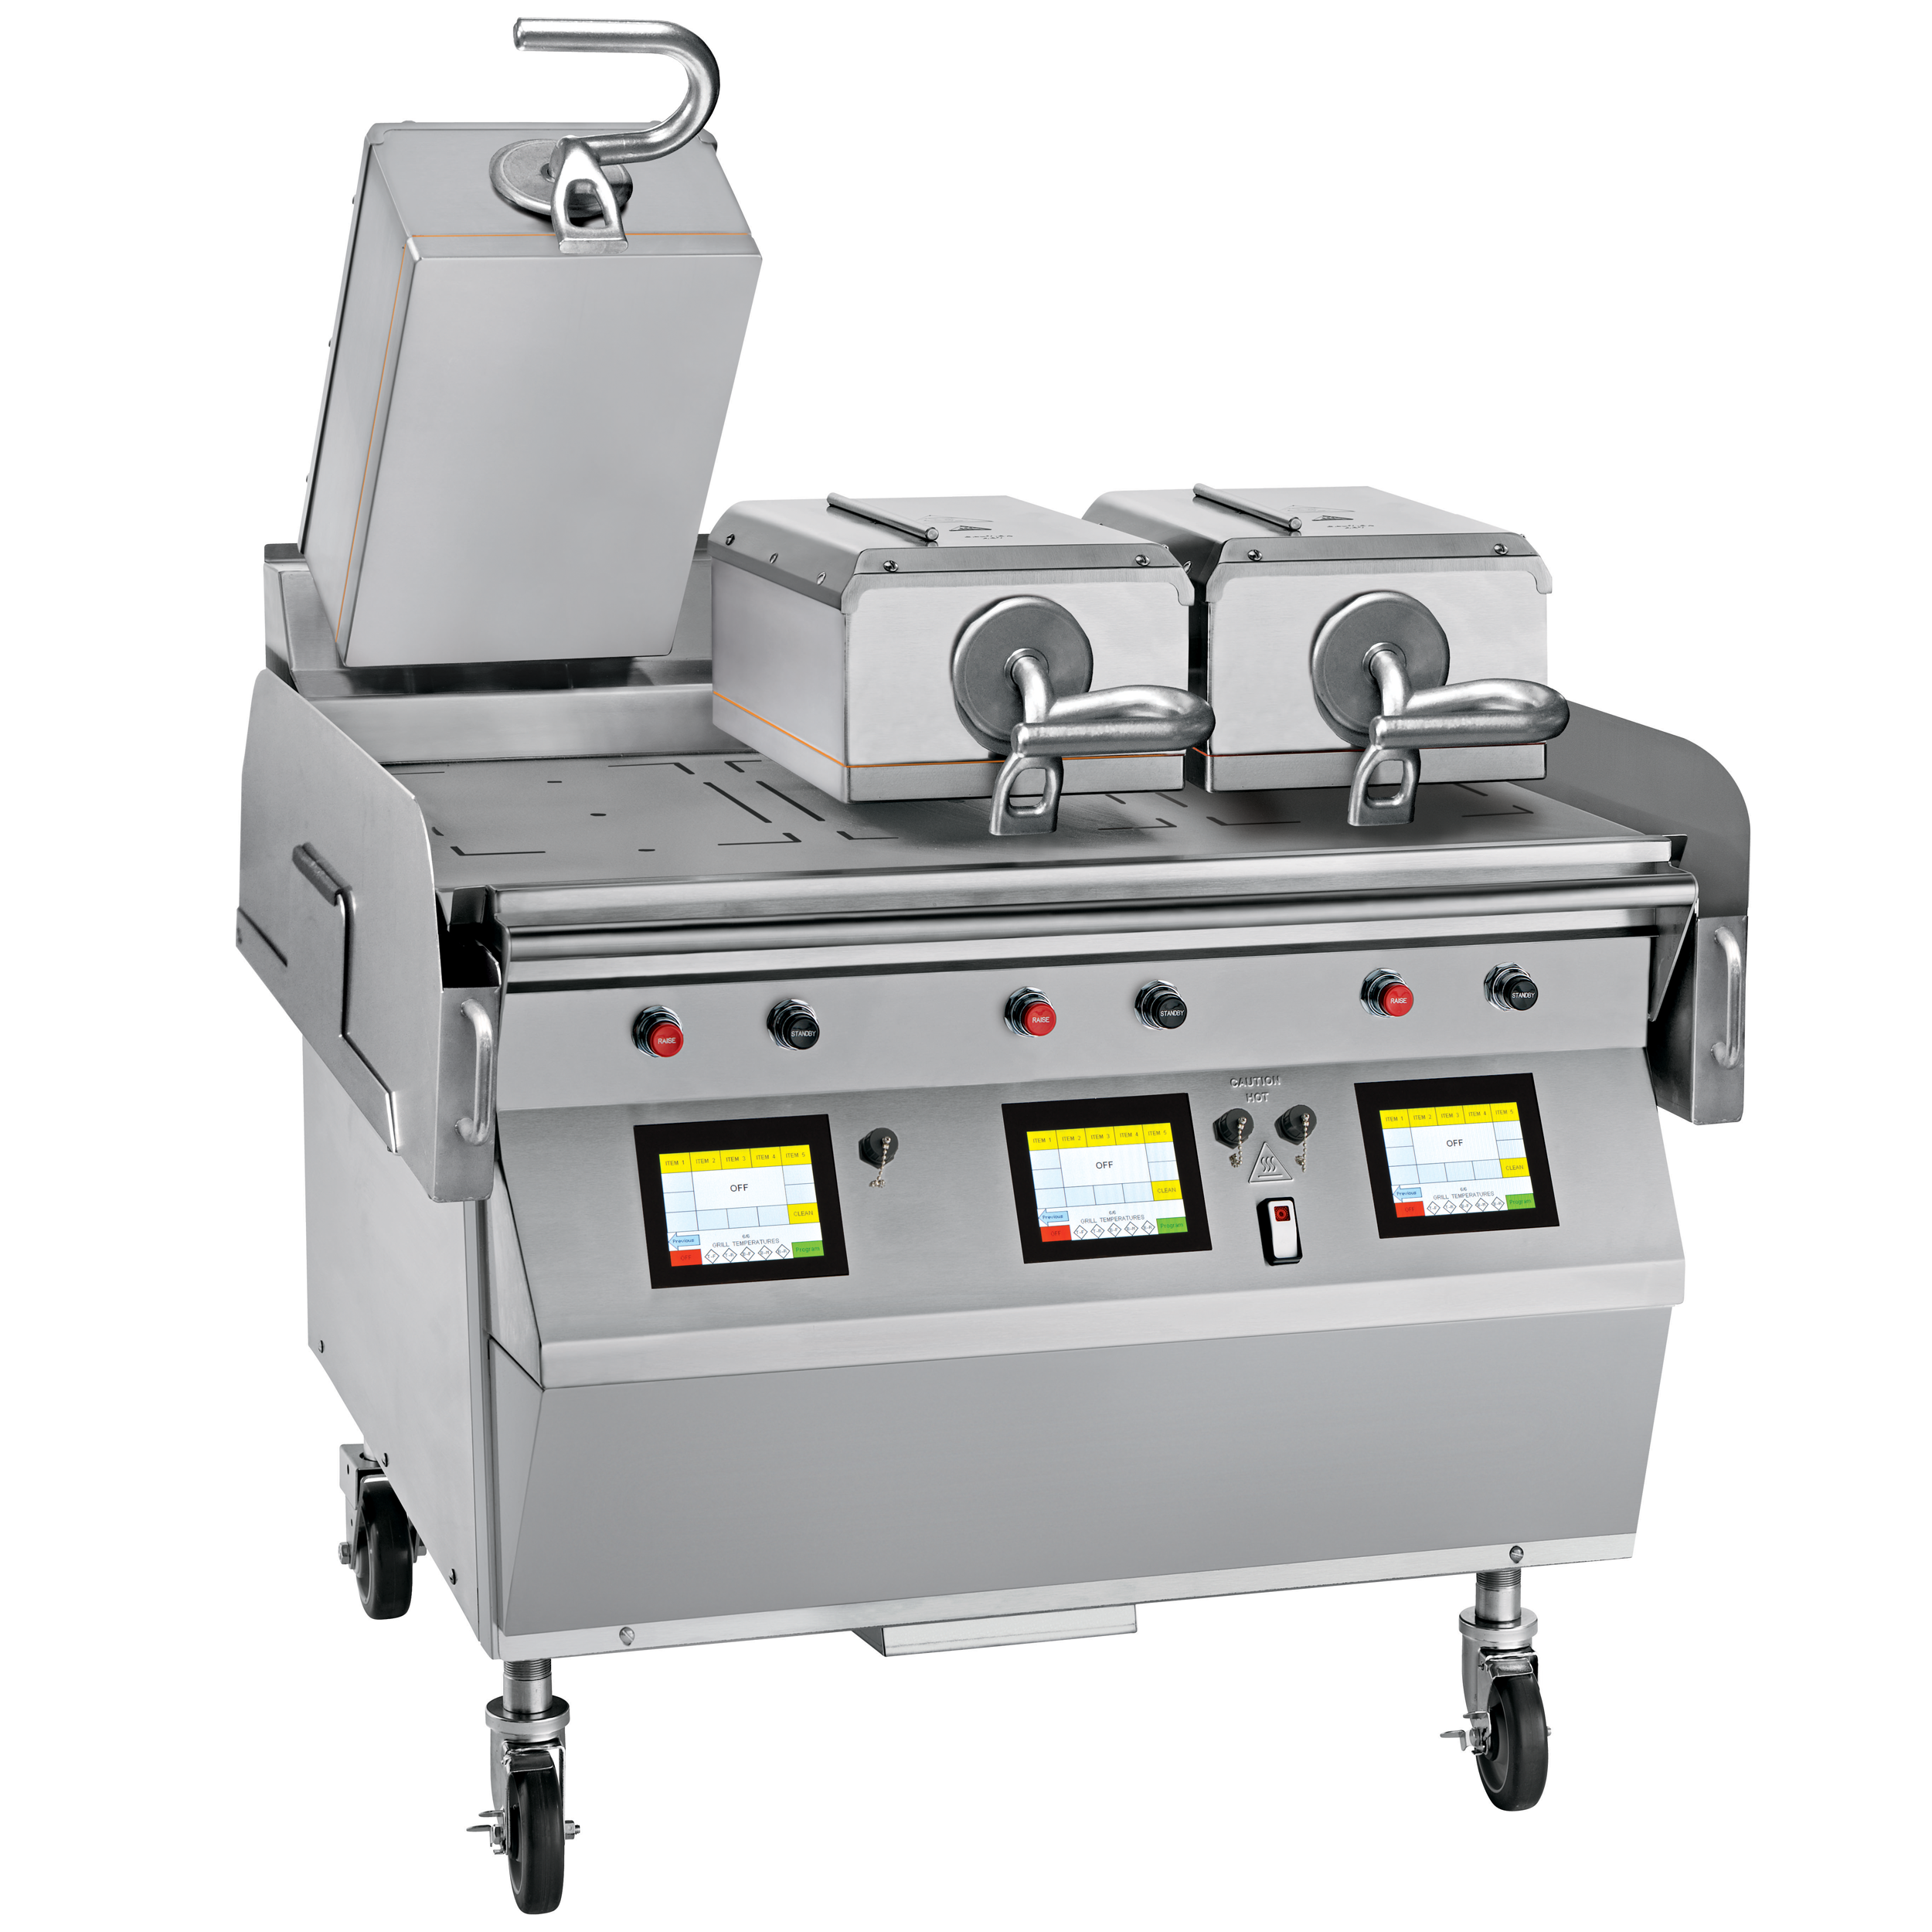 """Model L811  Gas/electric 3 Platen 36"""" Grill  One touch menu selection automatically provides accurate TIME, TEMPERATURE and GAP settings for every product.  KEY SPECIFICATIONS:   Lower Cooking Surface Heat Source : Gas   Upper Platen Heat Source : Electric   Cooking Surface Dimensions : 36""""   Installation : Floor Model   Upper Platens : 3"""